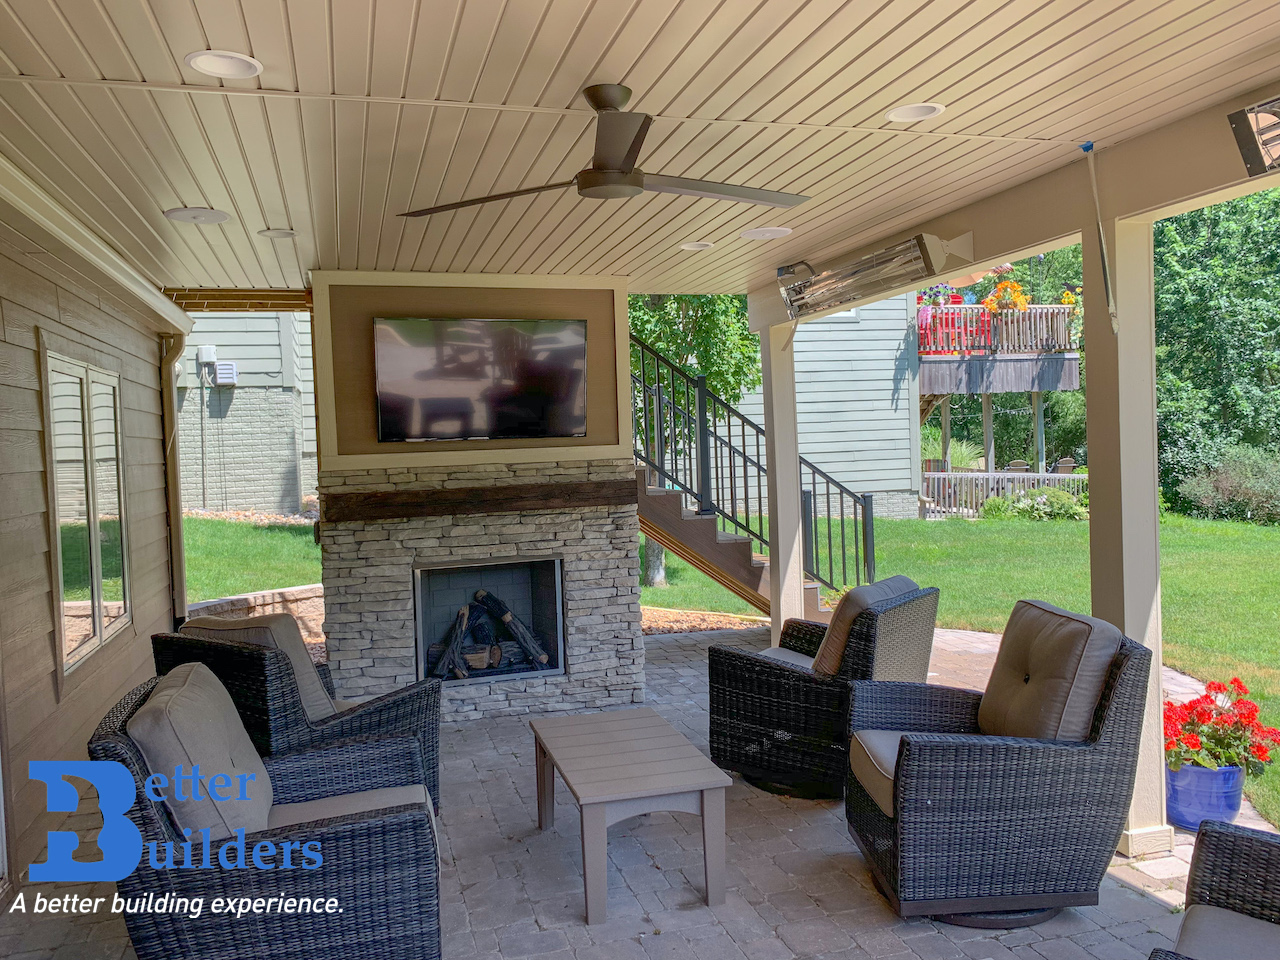 Outdoor fireplace built into feature wall design for entertainment.